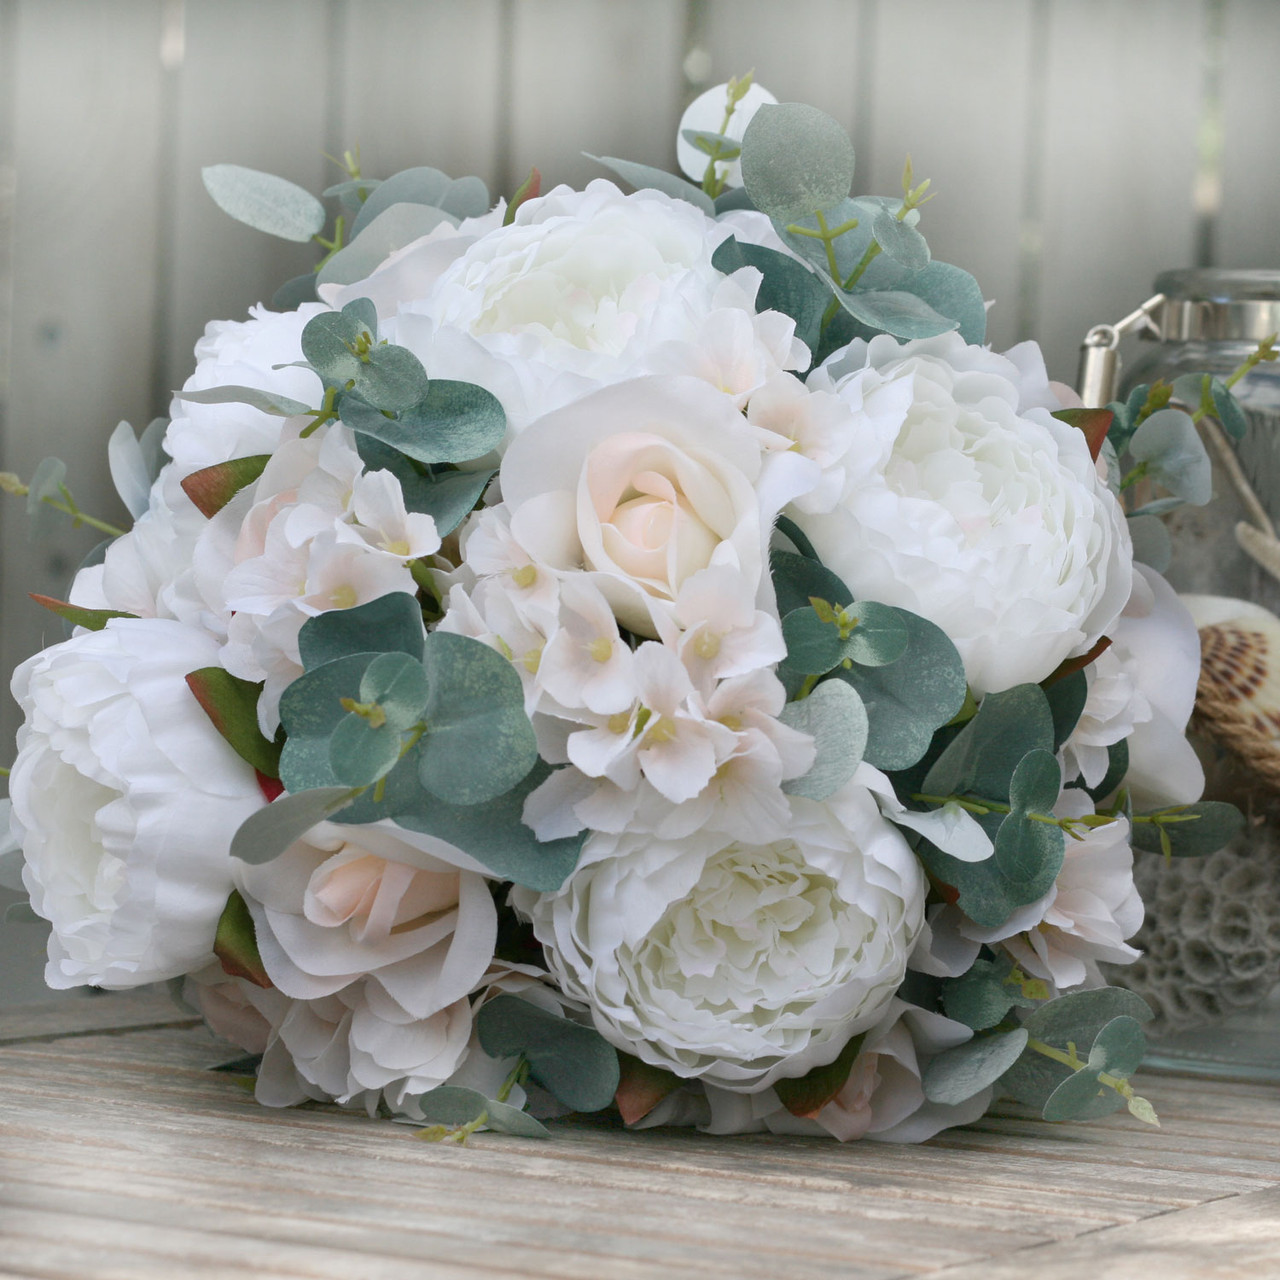 Artificial Wedding Bouquets.Ivory Blush Eucalyptus Artificial Wedding Bouquets Large